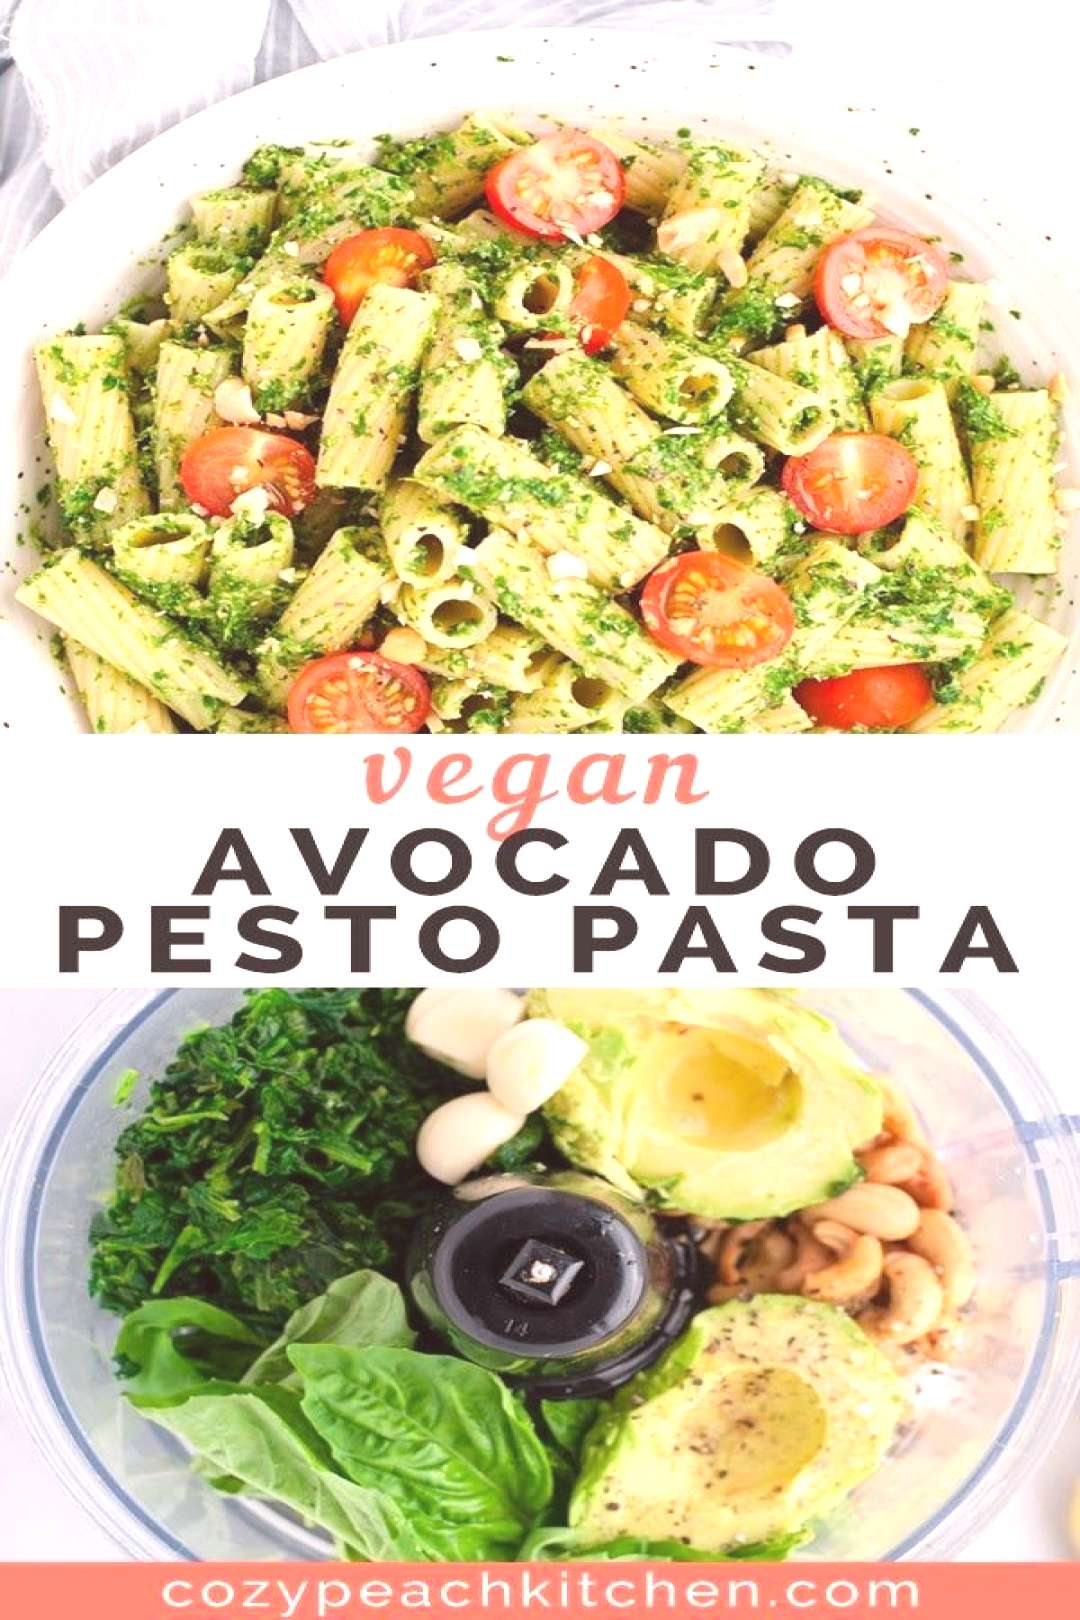 Vegan avocado pesto pasta is a quick and easy way to get in your greens. Made in less than 15 minut